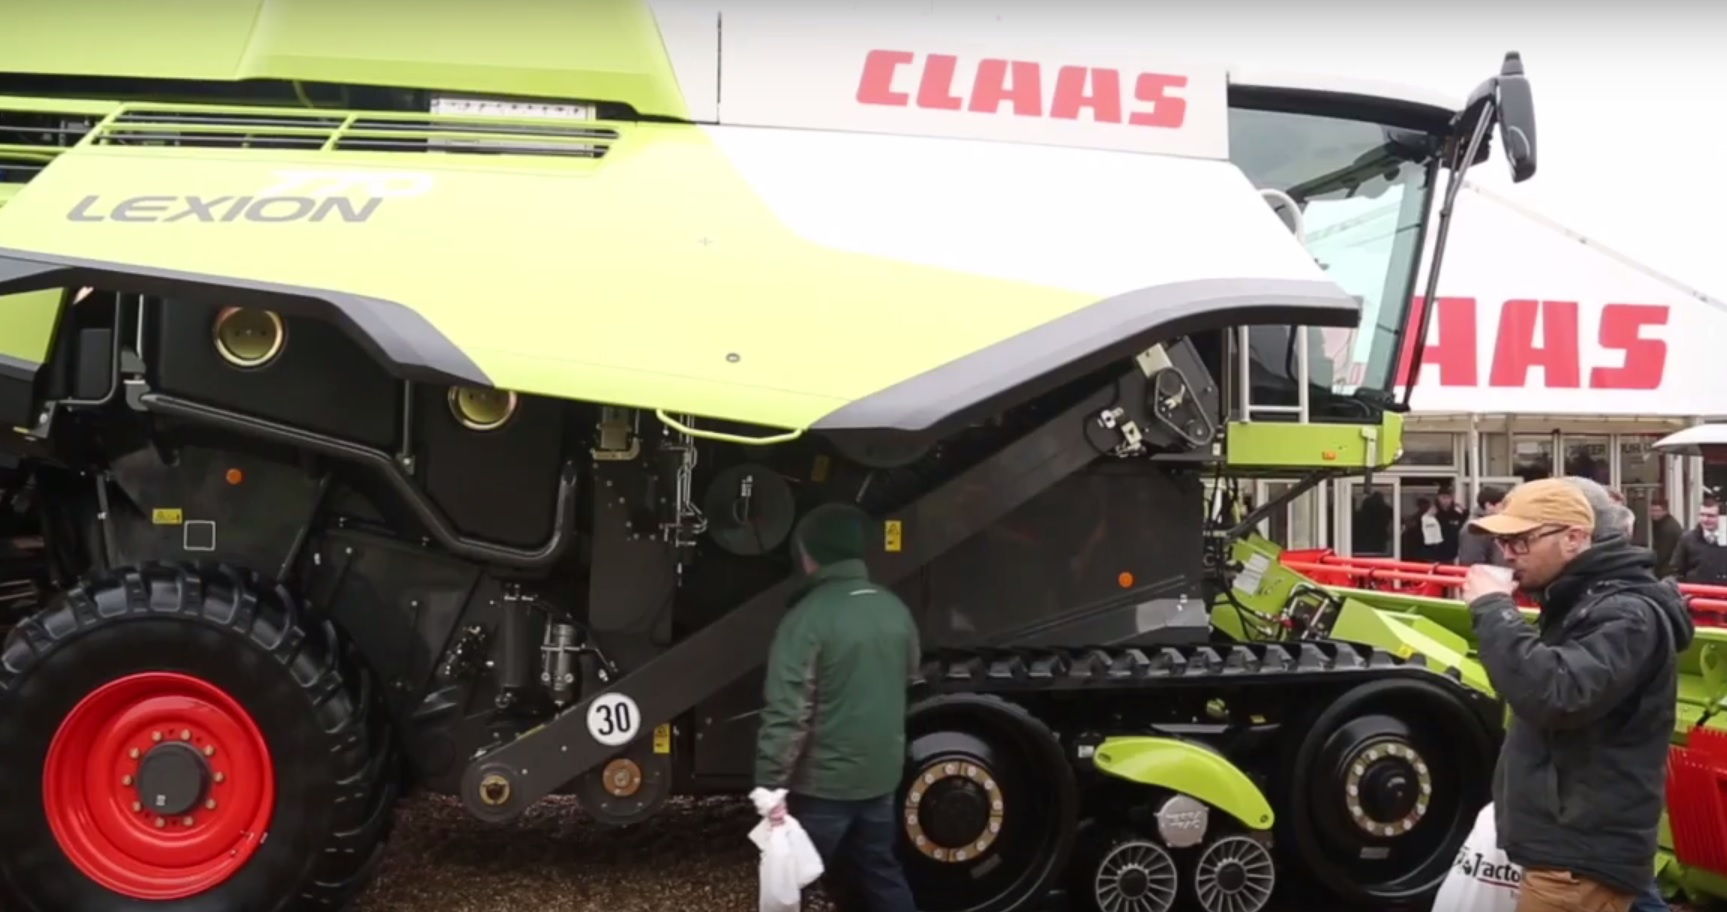 LEXION 600 combine, which for 2017 see's the addition of a number of new features and improvements